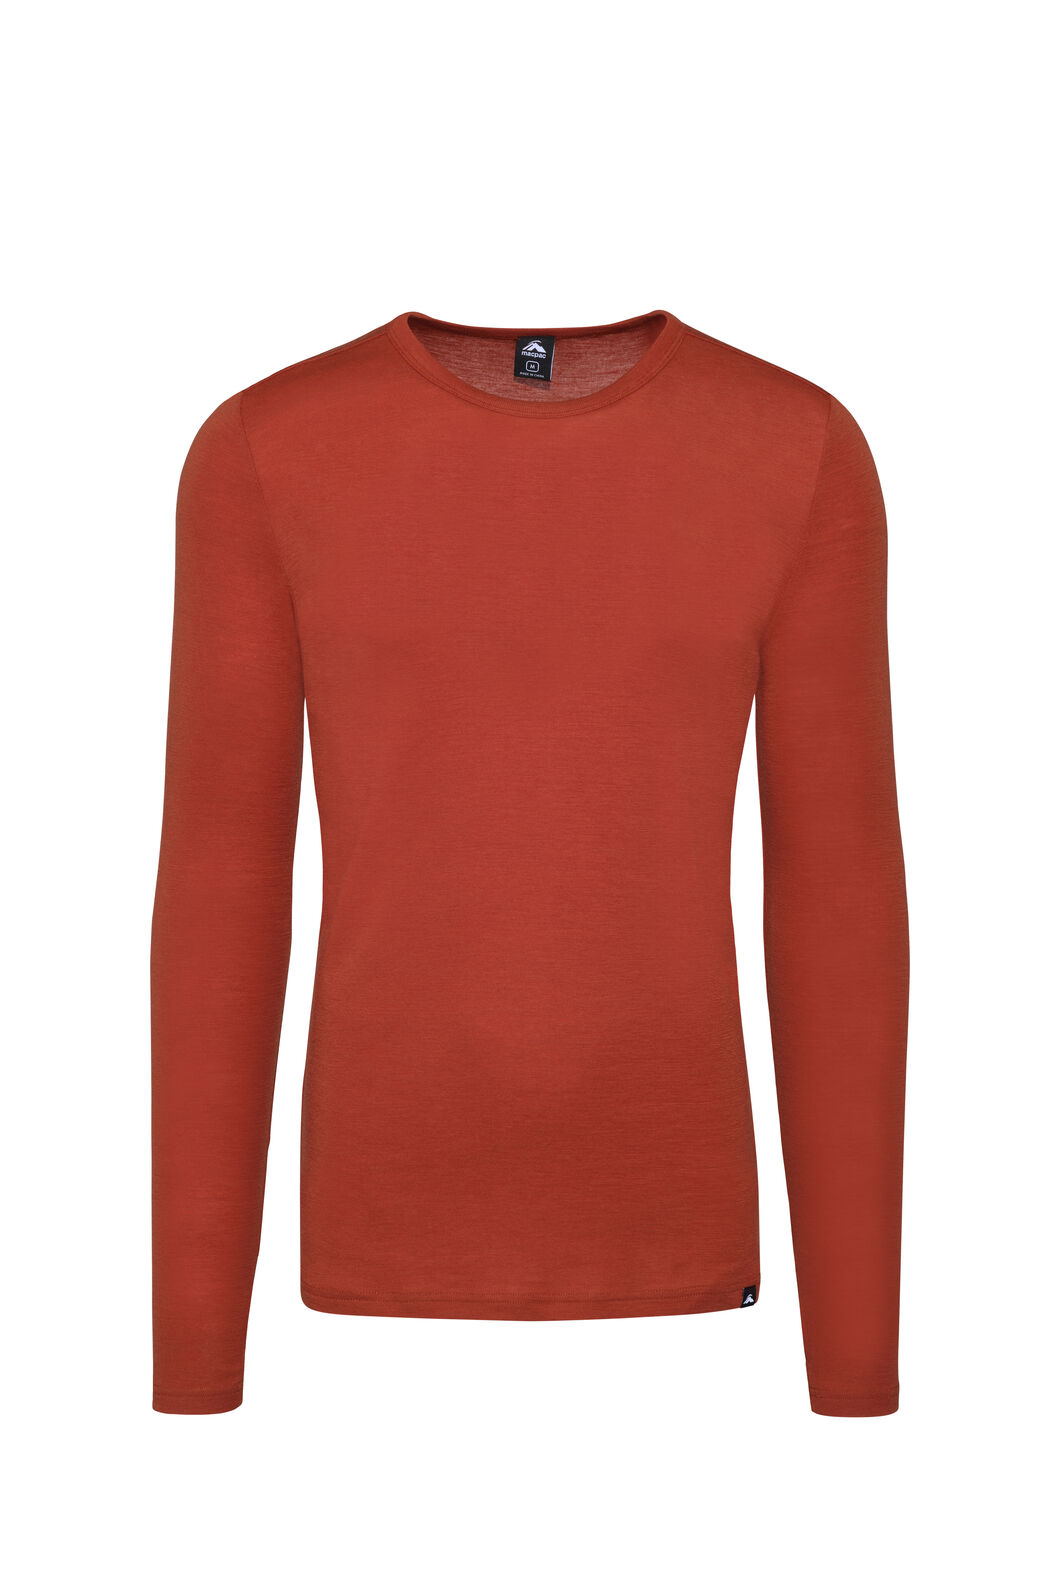 Macpac 220 Merino Long Sleeve Top — Men's, Rooibos Tea, hi-res